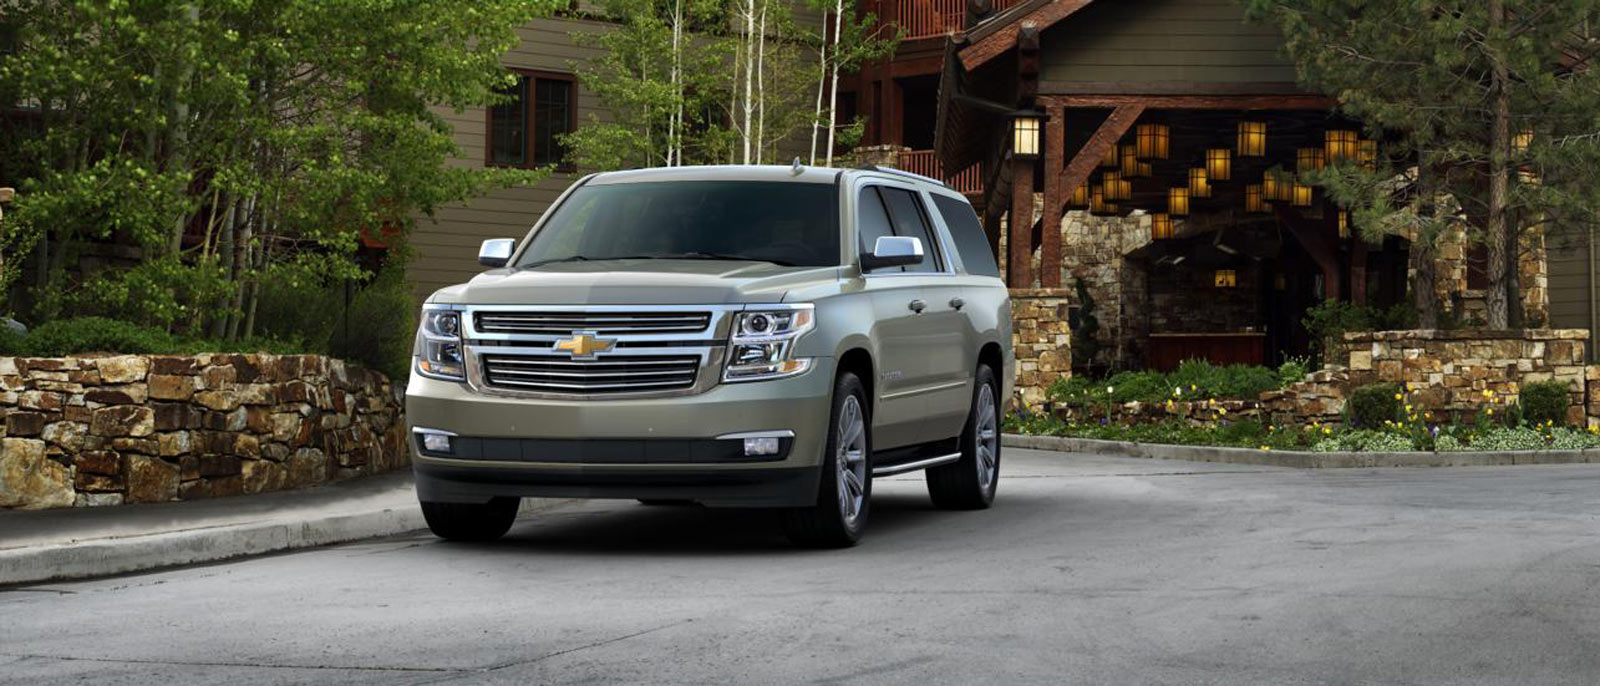 suvs is model by category added changes pin suburban featured jun on the car pinterest image crossovers chevrolet pictures author in